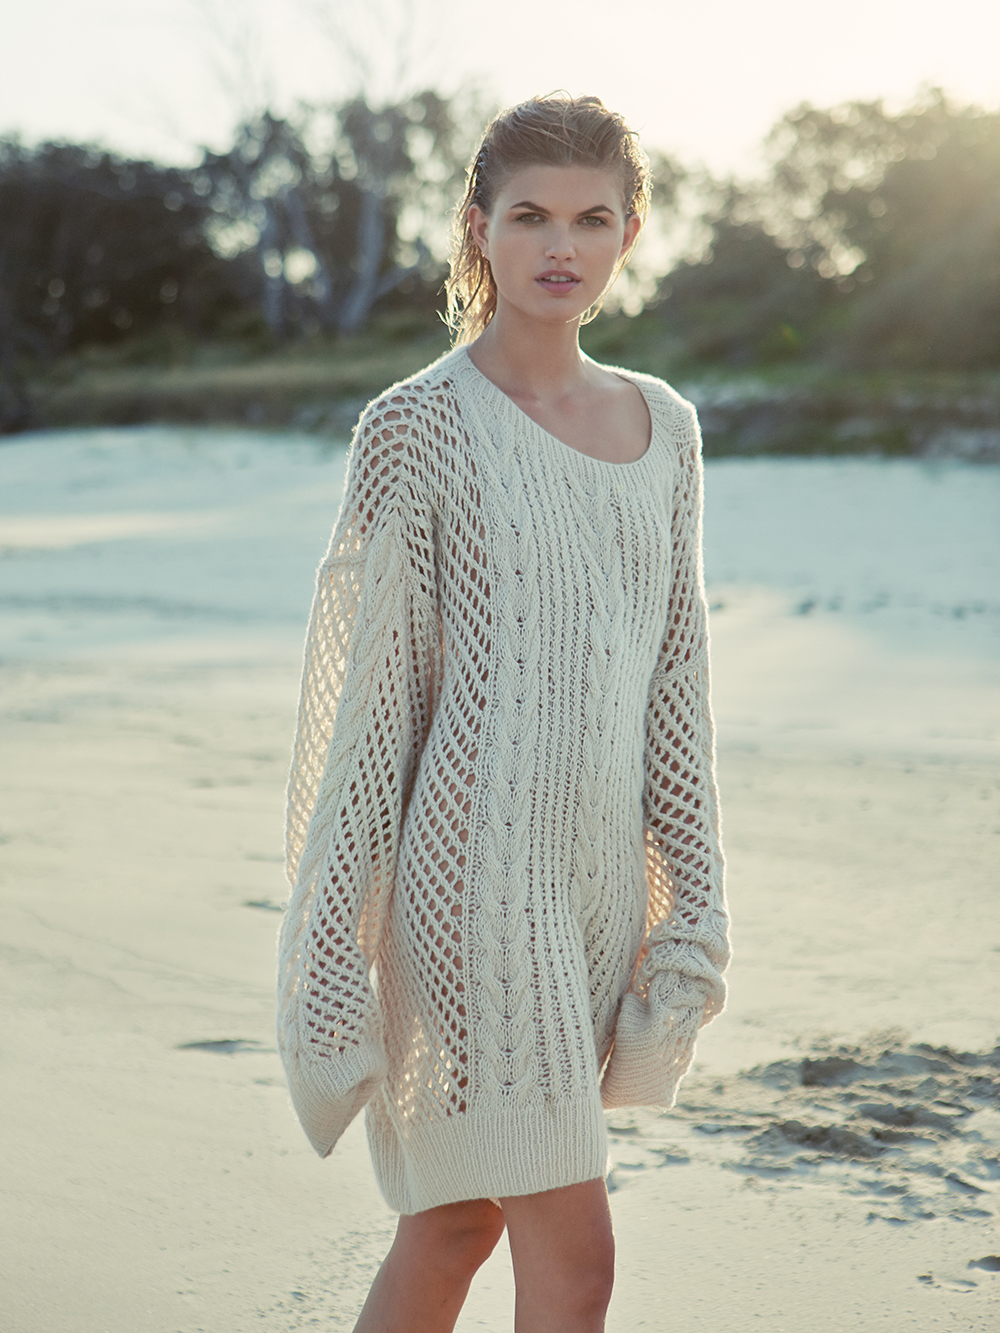 Sybil Steel, Photographer, Louise Mikkelson, Model, Oversized Knit, Crochet, Sweater, Jumper, Beach Editorial, Oracle Fox Journal, Oracle Fox